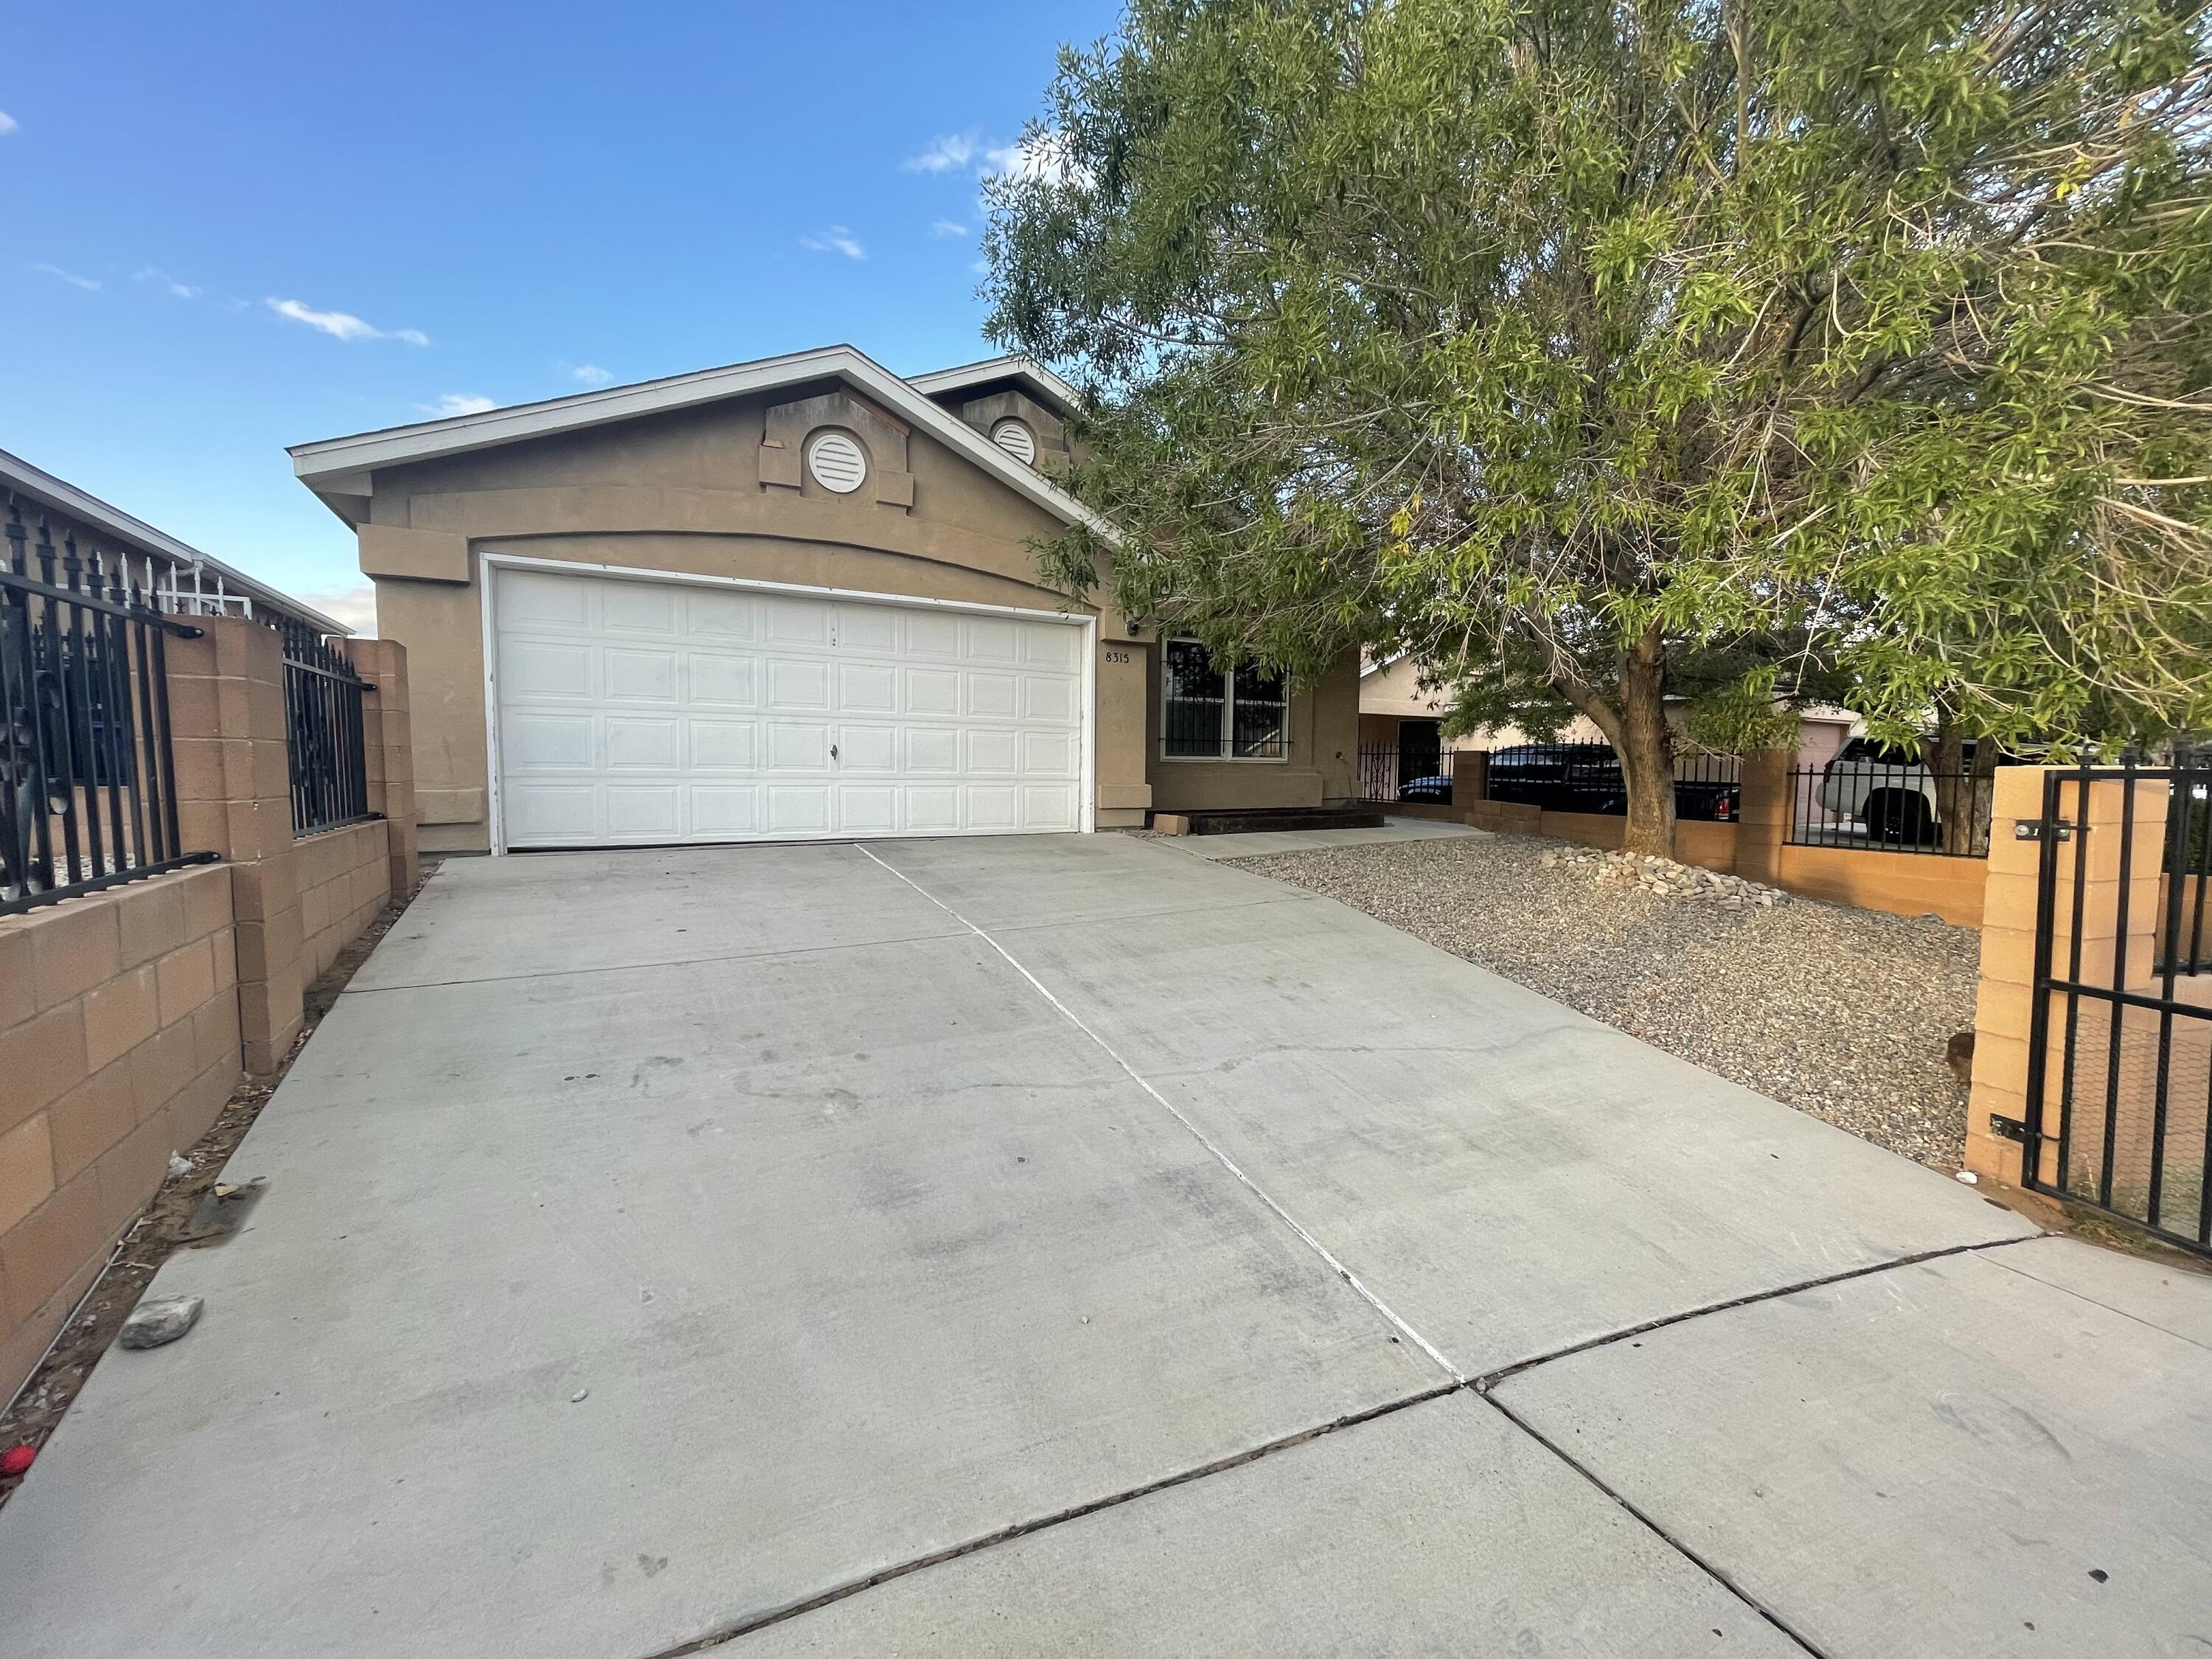 MOVE IN READY!!  Really well Taken Care Of 3Bedroom 2Bath, Priced To Sell, Vacant And Ready for new owners, Vinyl Windows, Refrigerated Air, Save Energy On Your Billswith solar panels(Leased). Tile Throughout, Backyard ready to entertain Guest!! Don't miss out.